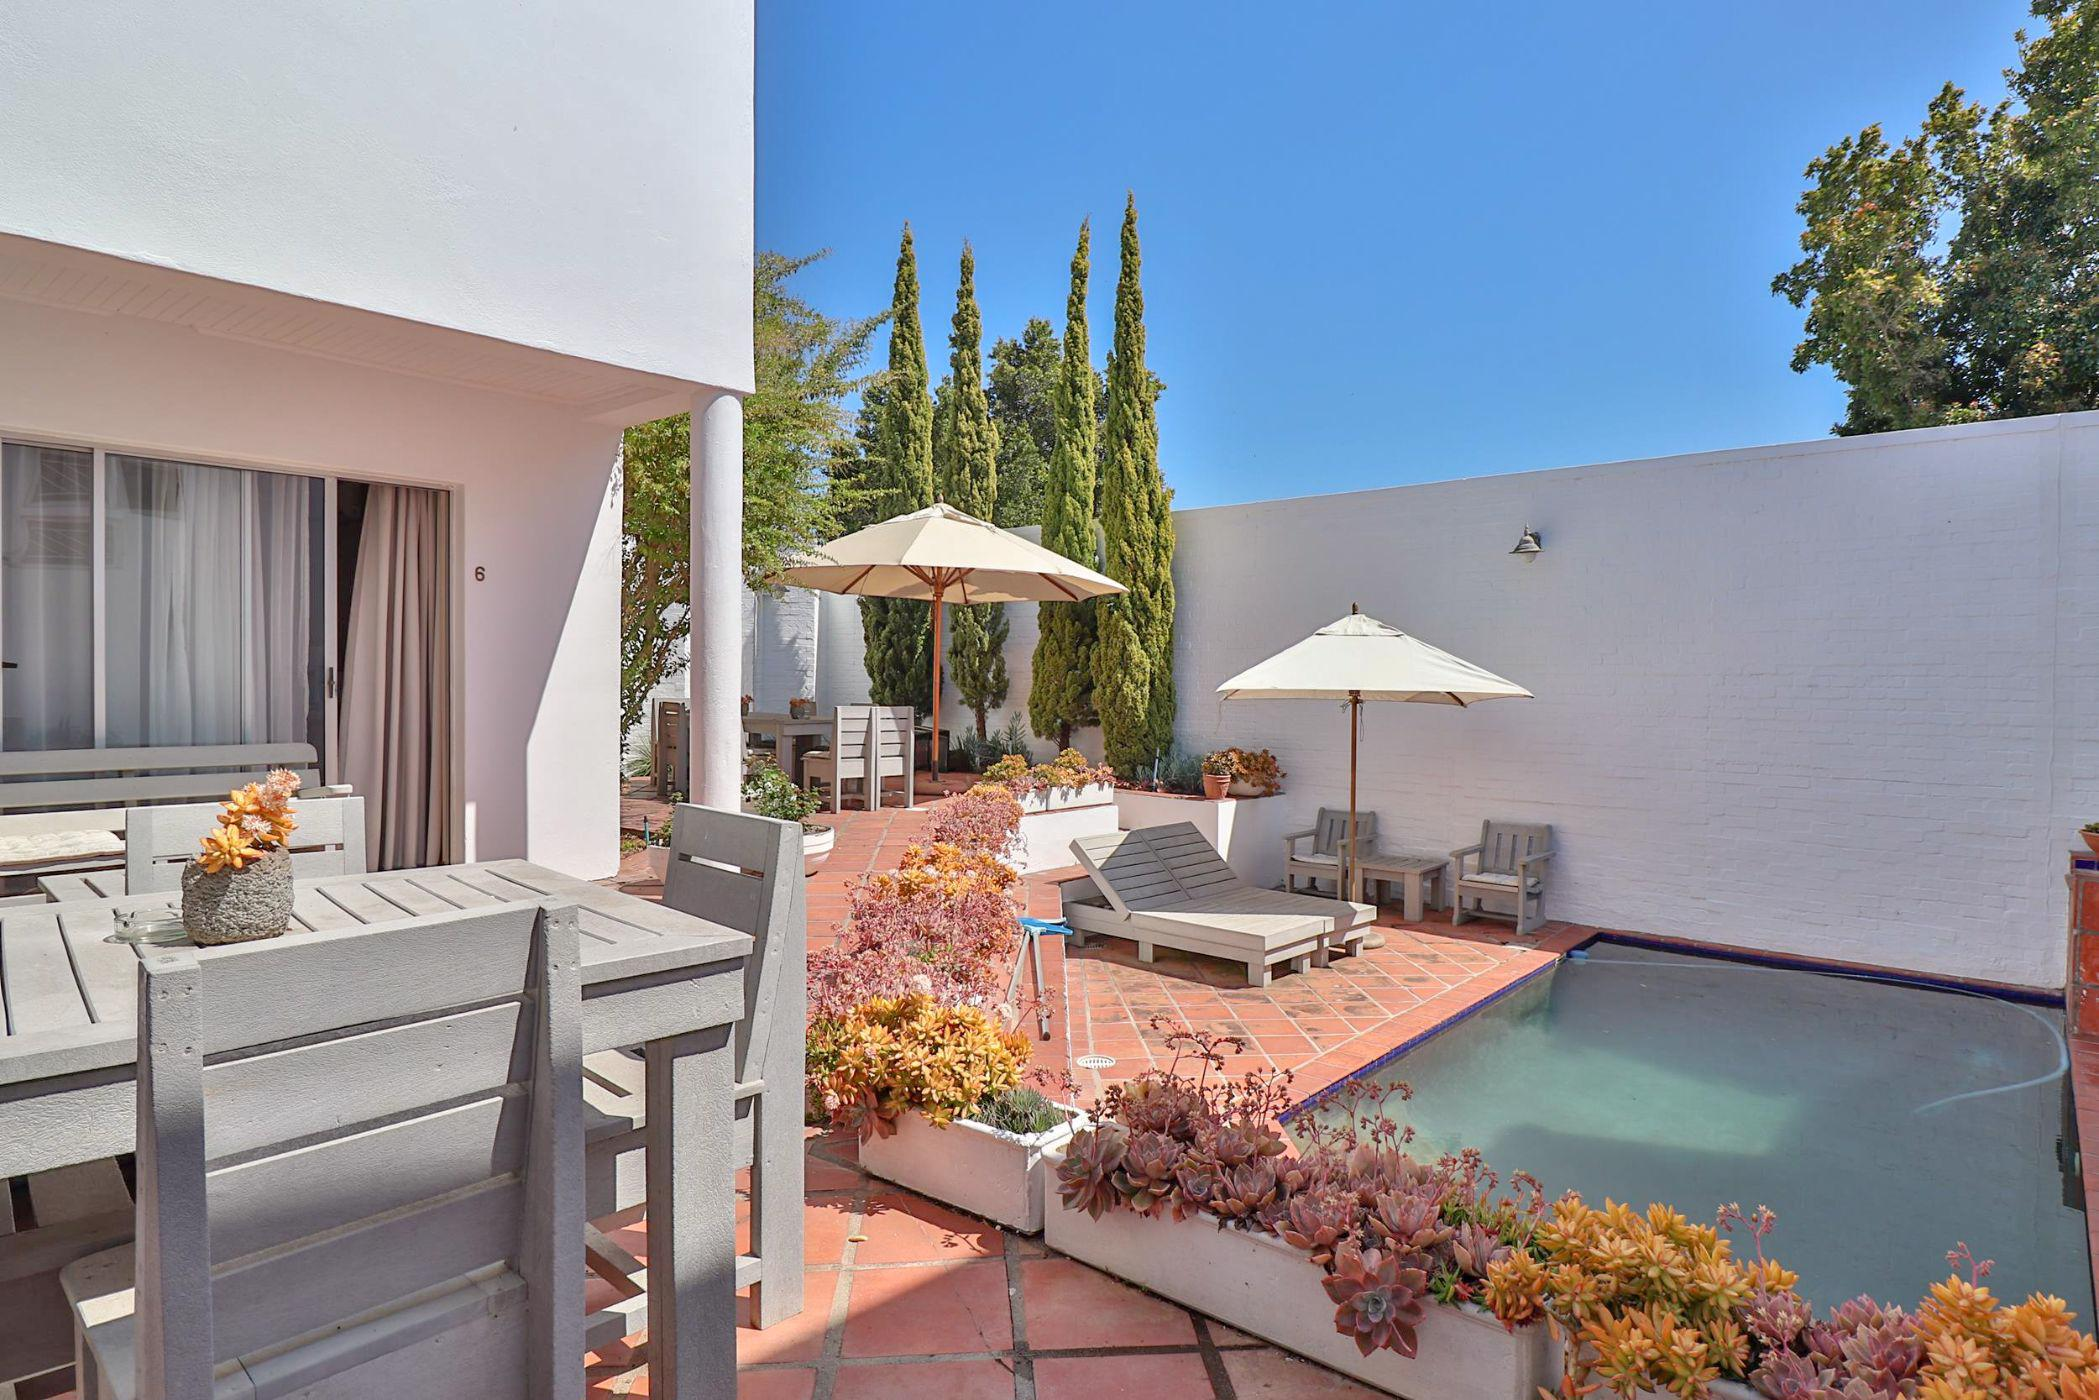 6 bedroom house for sale in Paradyskloof